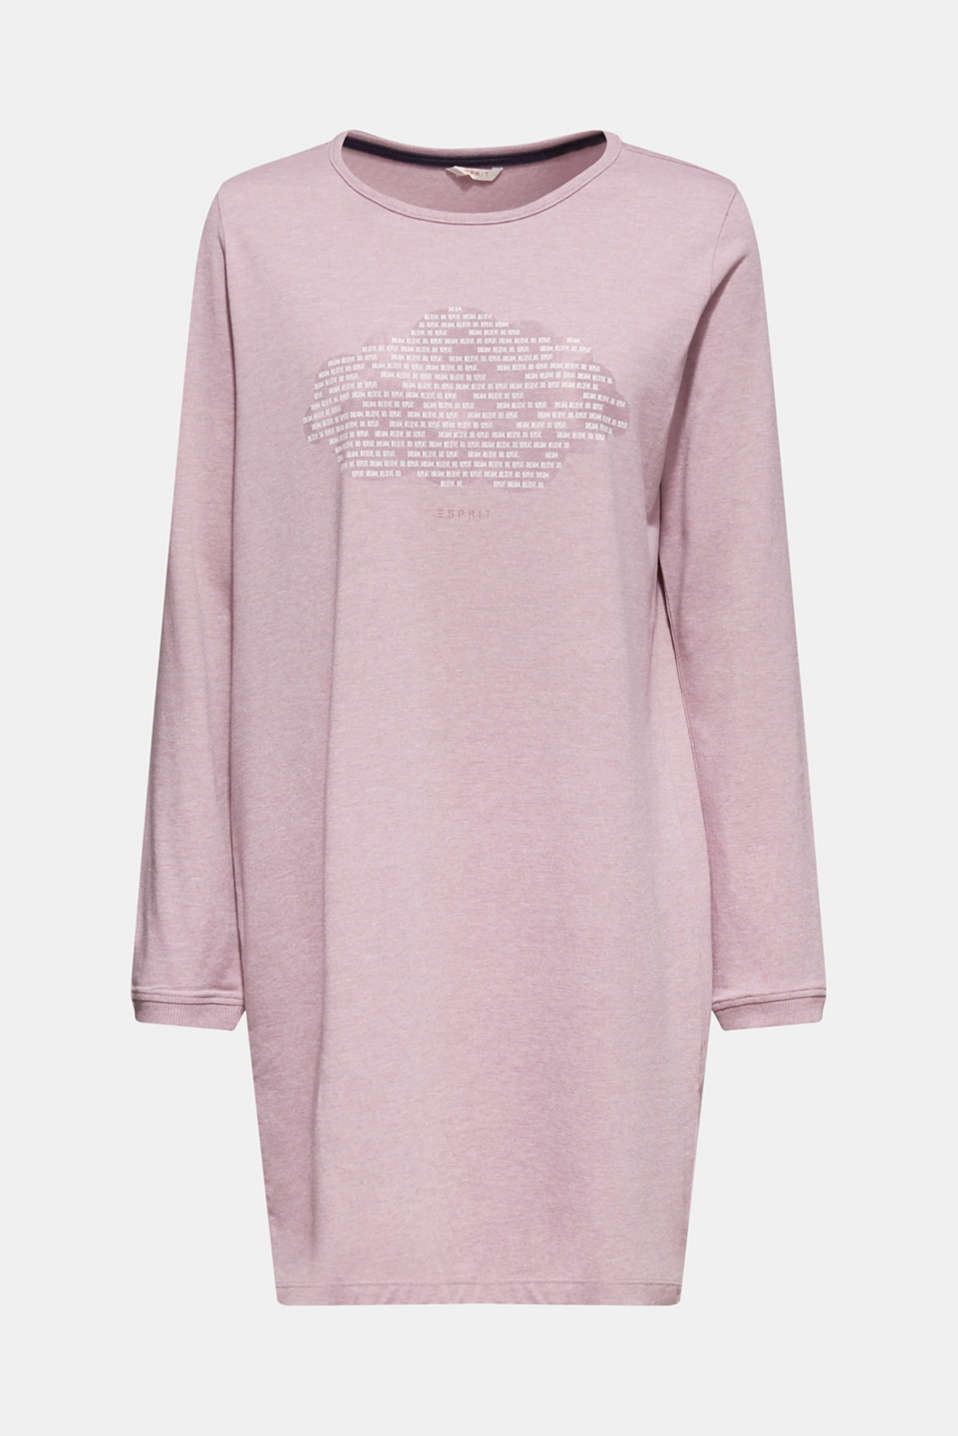 Jersey nightshirt with a print, MAUVE, detail image number 5